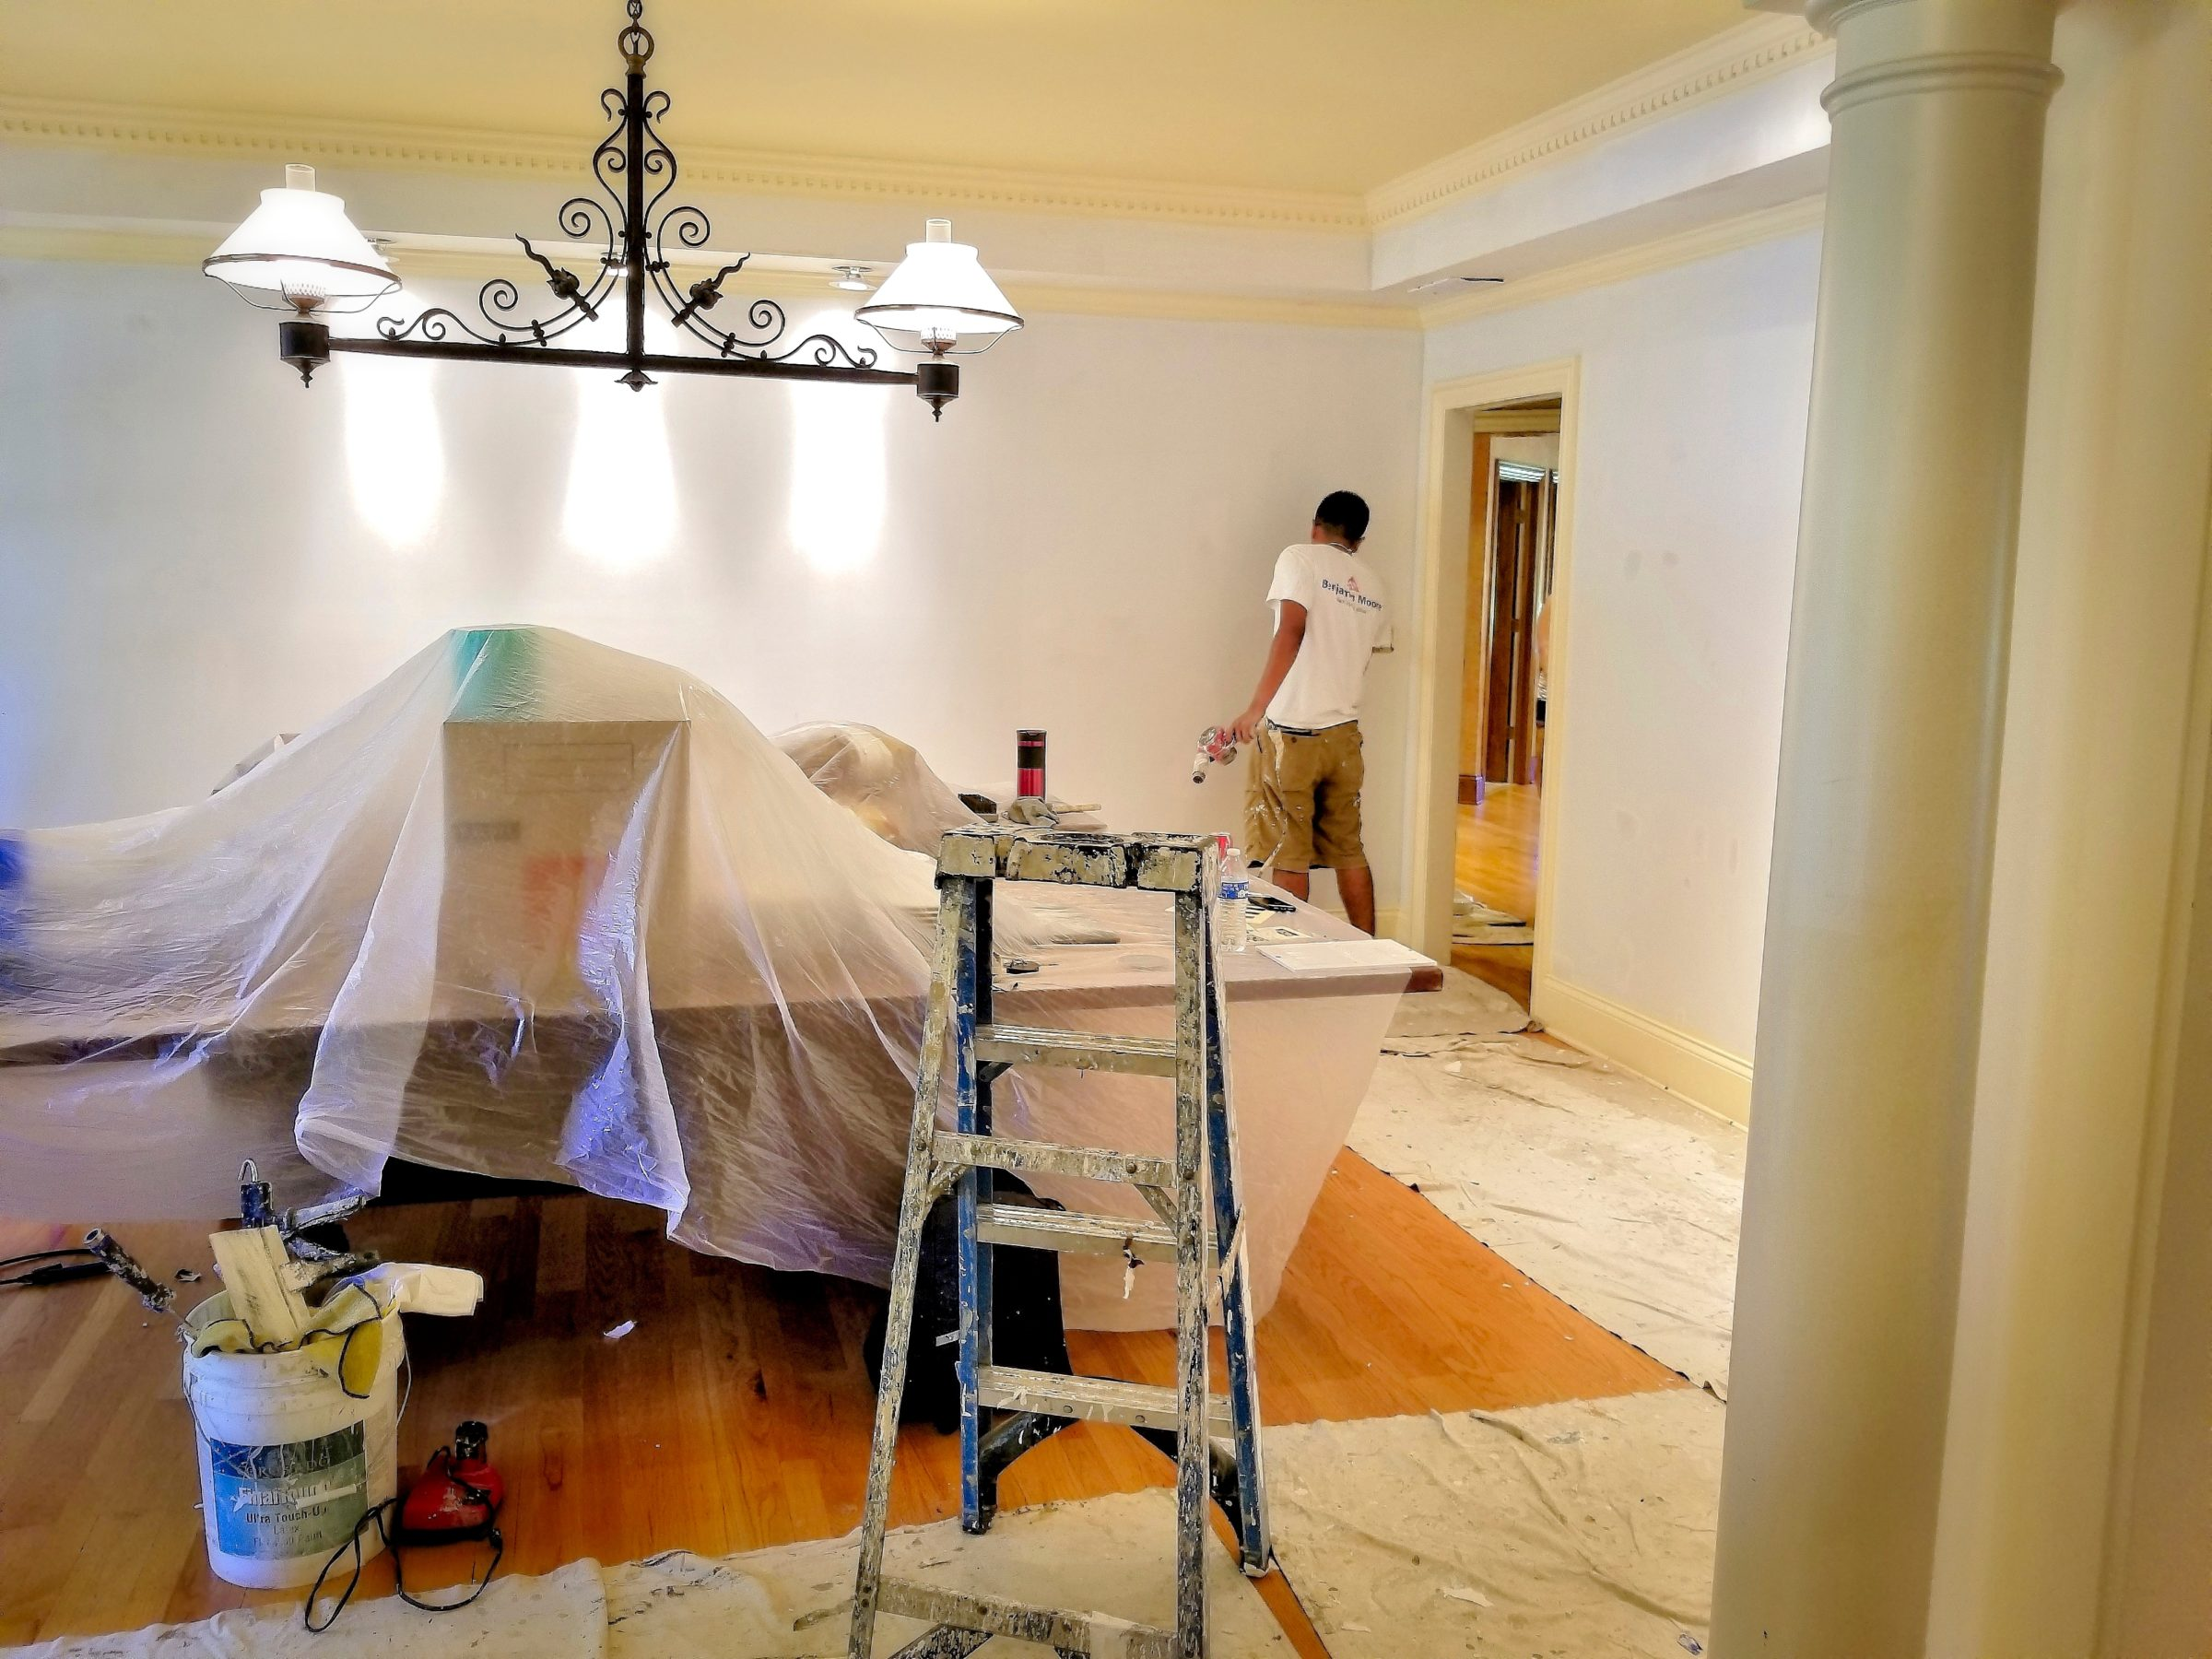 painters paint a room during a remodel VLFZMVS